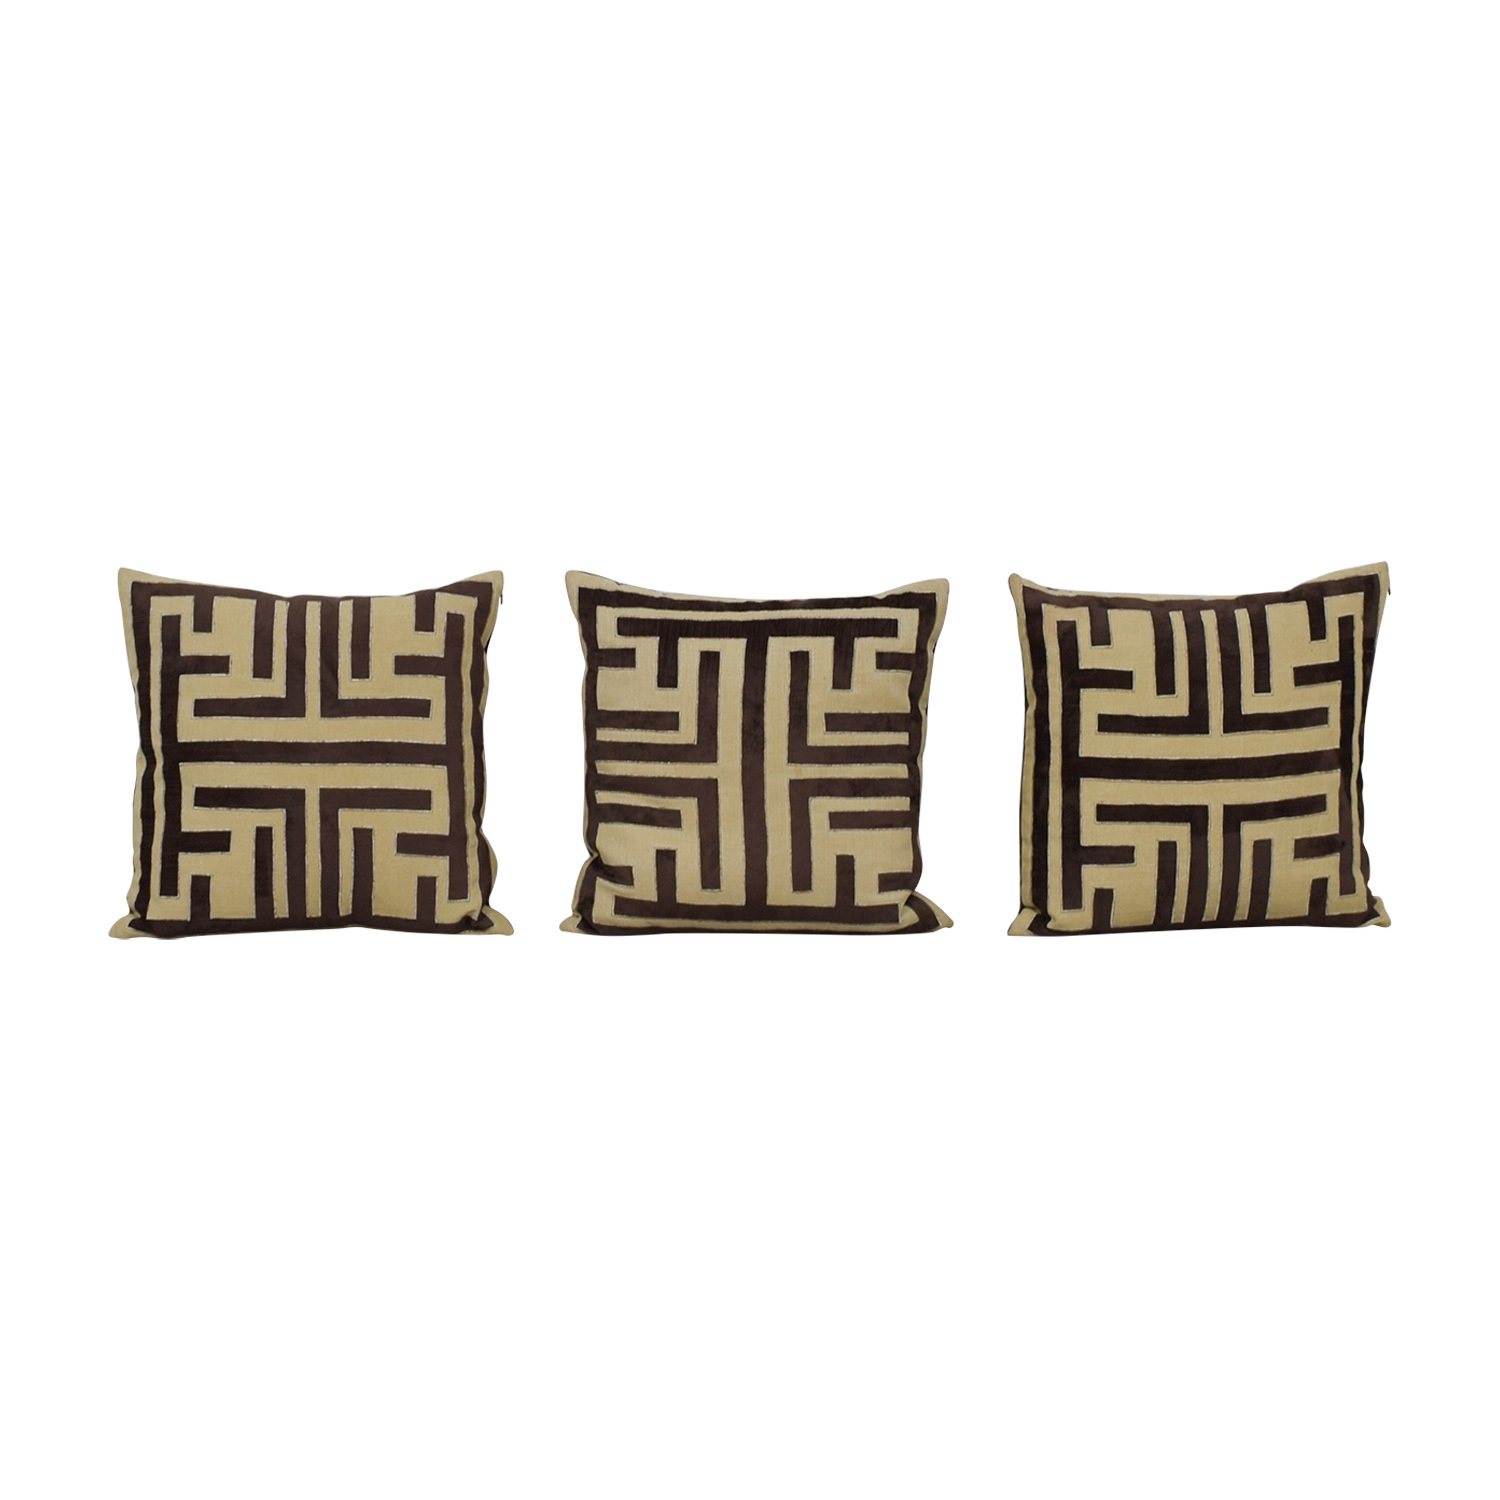 Z Gallerie Z Gallerie Labyrinth Brown and Beige Pillows on sale